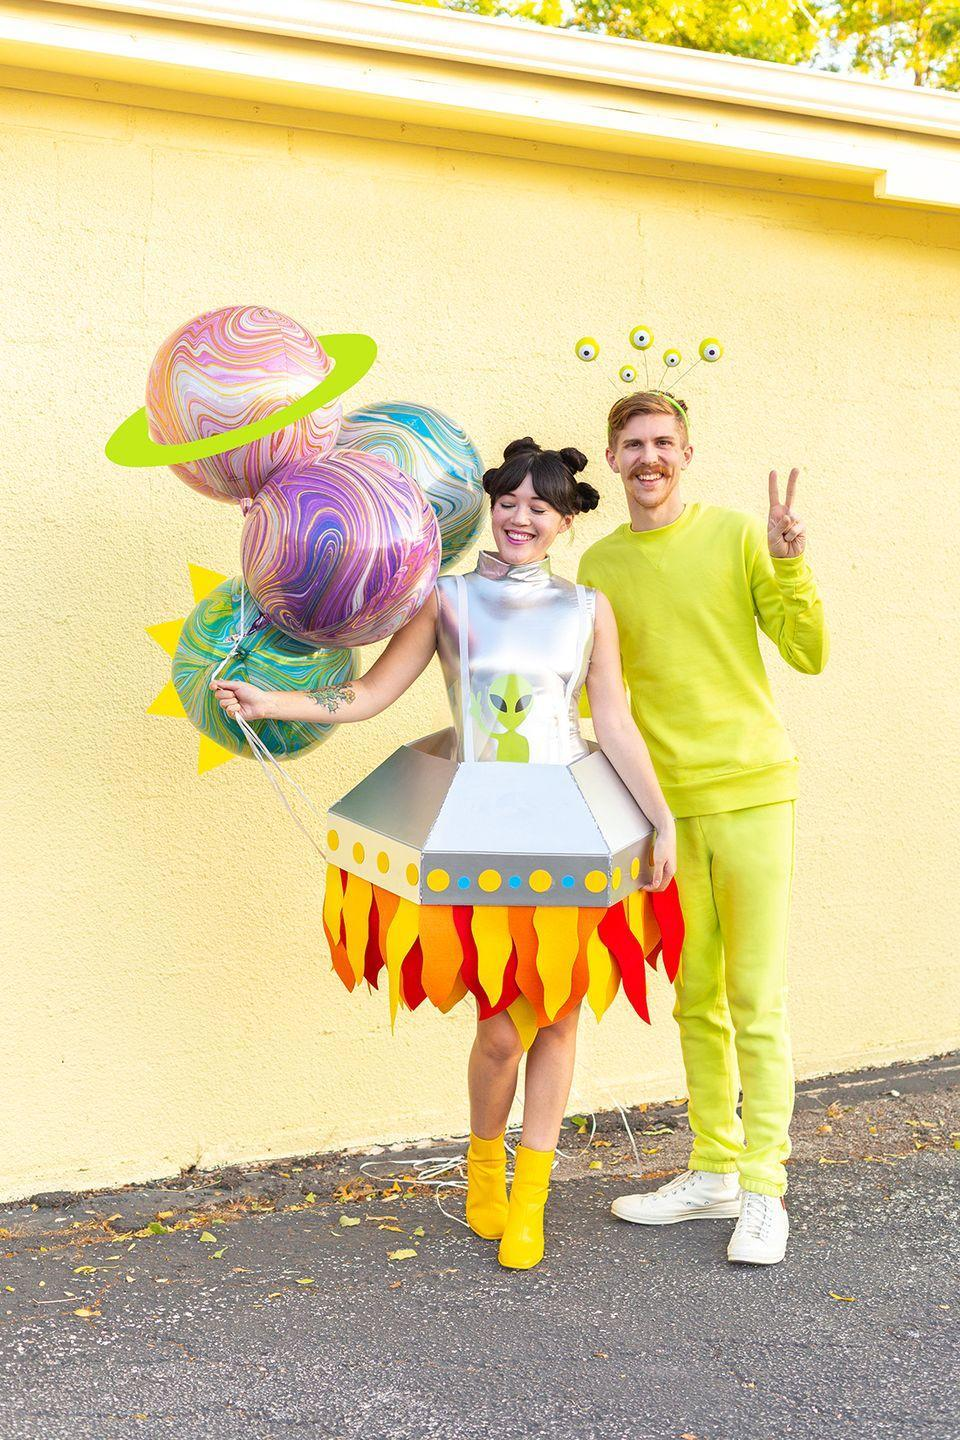 """<p>Turn Halloween into a truly out-of-this-world date night with this inventive and adorable couple's costume. </p><p><strong>Get the tutorial at <a href=""""http://www.awwsam.com/2019/10/ufo-and-alien-couples-costume.html"""" rel=""""nofollow noopener"""" target=""""_blank"""" data-ylk=""""slk:Aww Sam"""" class=""""link rapid-noclick-resp"""">Aww Sam</a>.</strong></p><p><strong><a class=""""link rapid-noclick-resp"""" href=""""https://www.amazon.com/Mvefward-Metallic-Turtleneck-Spandex-Leotard/dp/B07W6CJJ7S/ref=sr_1_2?tag=syn-yahoo-20&ascsubtag=%5Bartid%7C10050.g.28496790%5Bsrc%7Cyahoo-us"""" rel=""""nofollow noopener"""" target=""""_blank"""" data-ylk=""""slk:SHOP SILVER LEOTARDS"""">SHOP SILVER LEOTARDS</a> <br></strong></p>"""